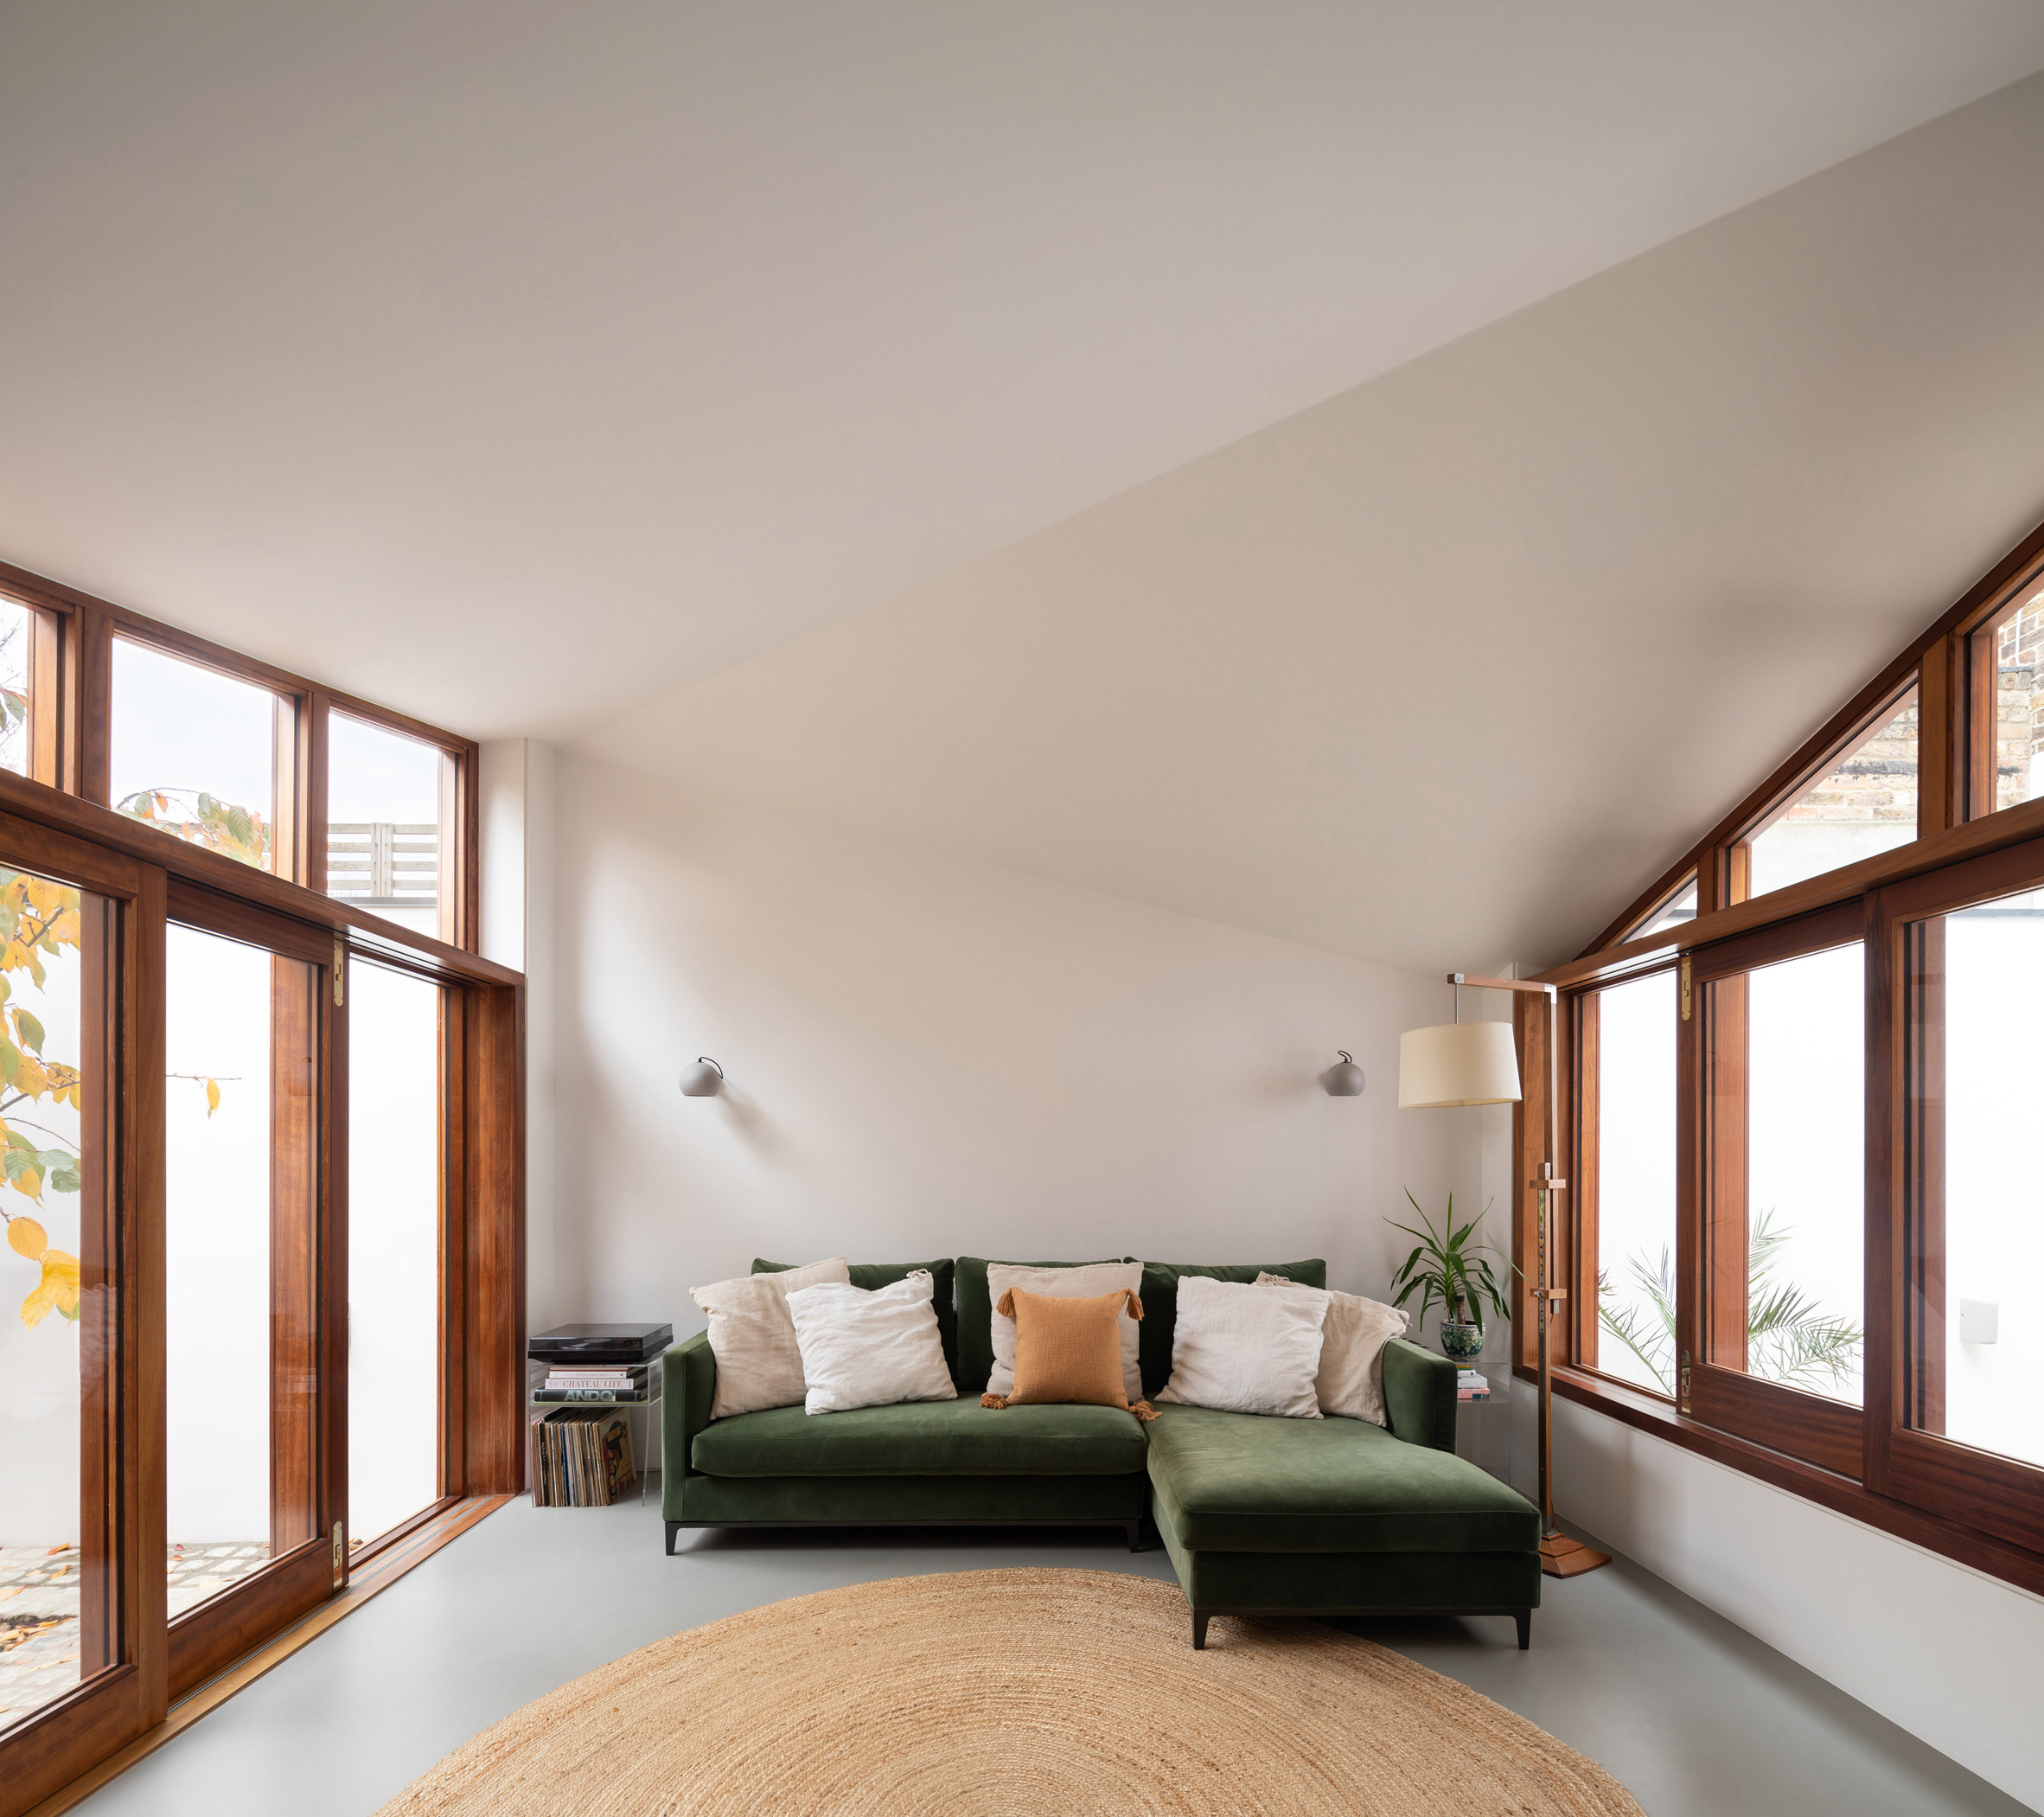 A living area flanked by two courtyards